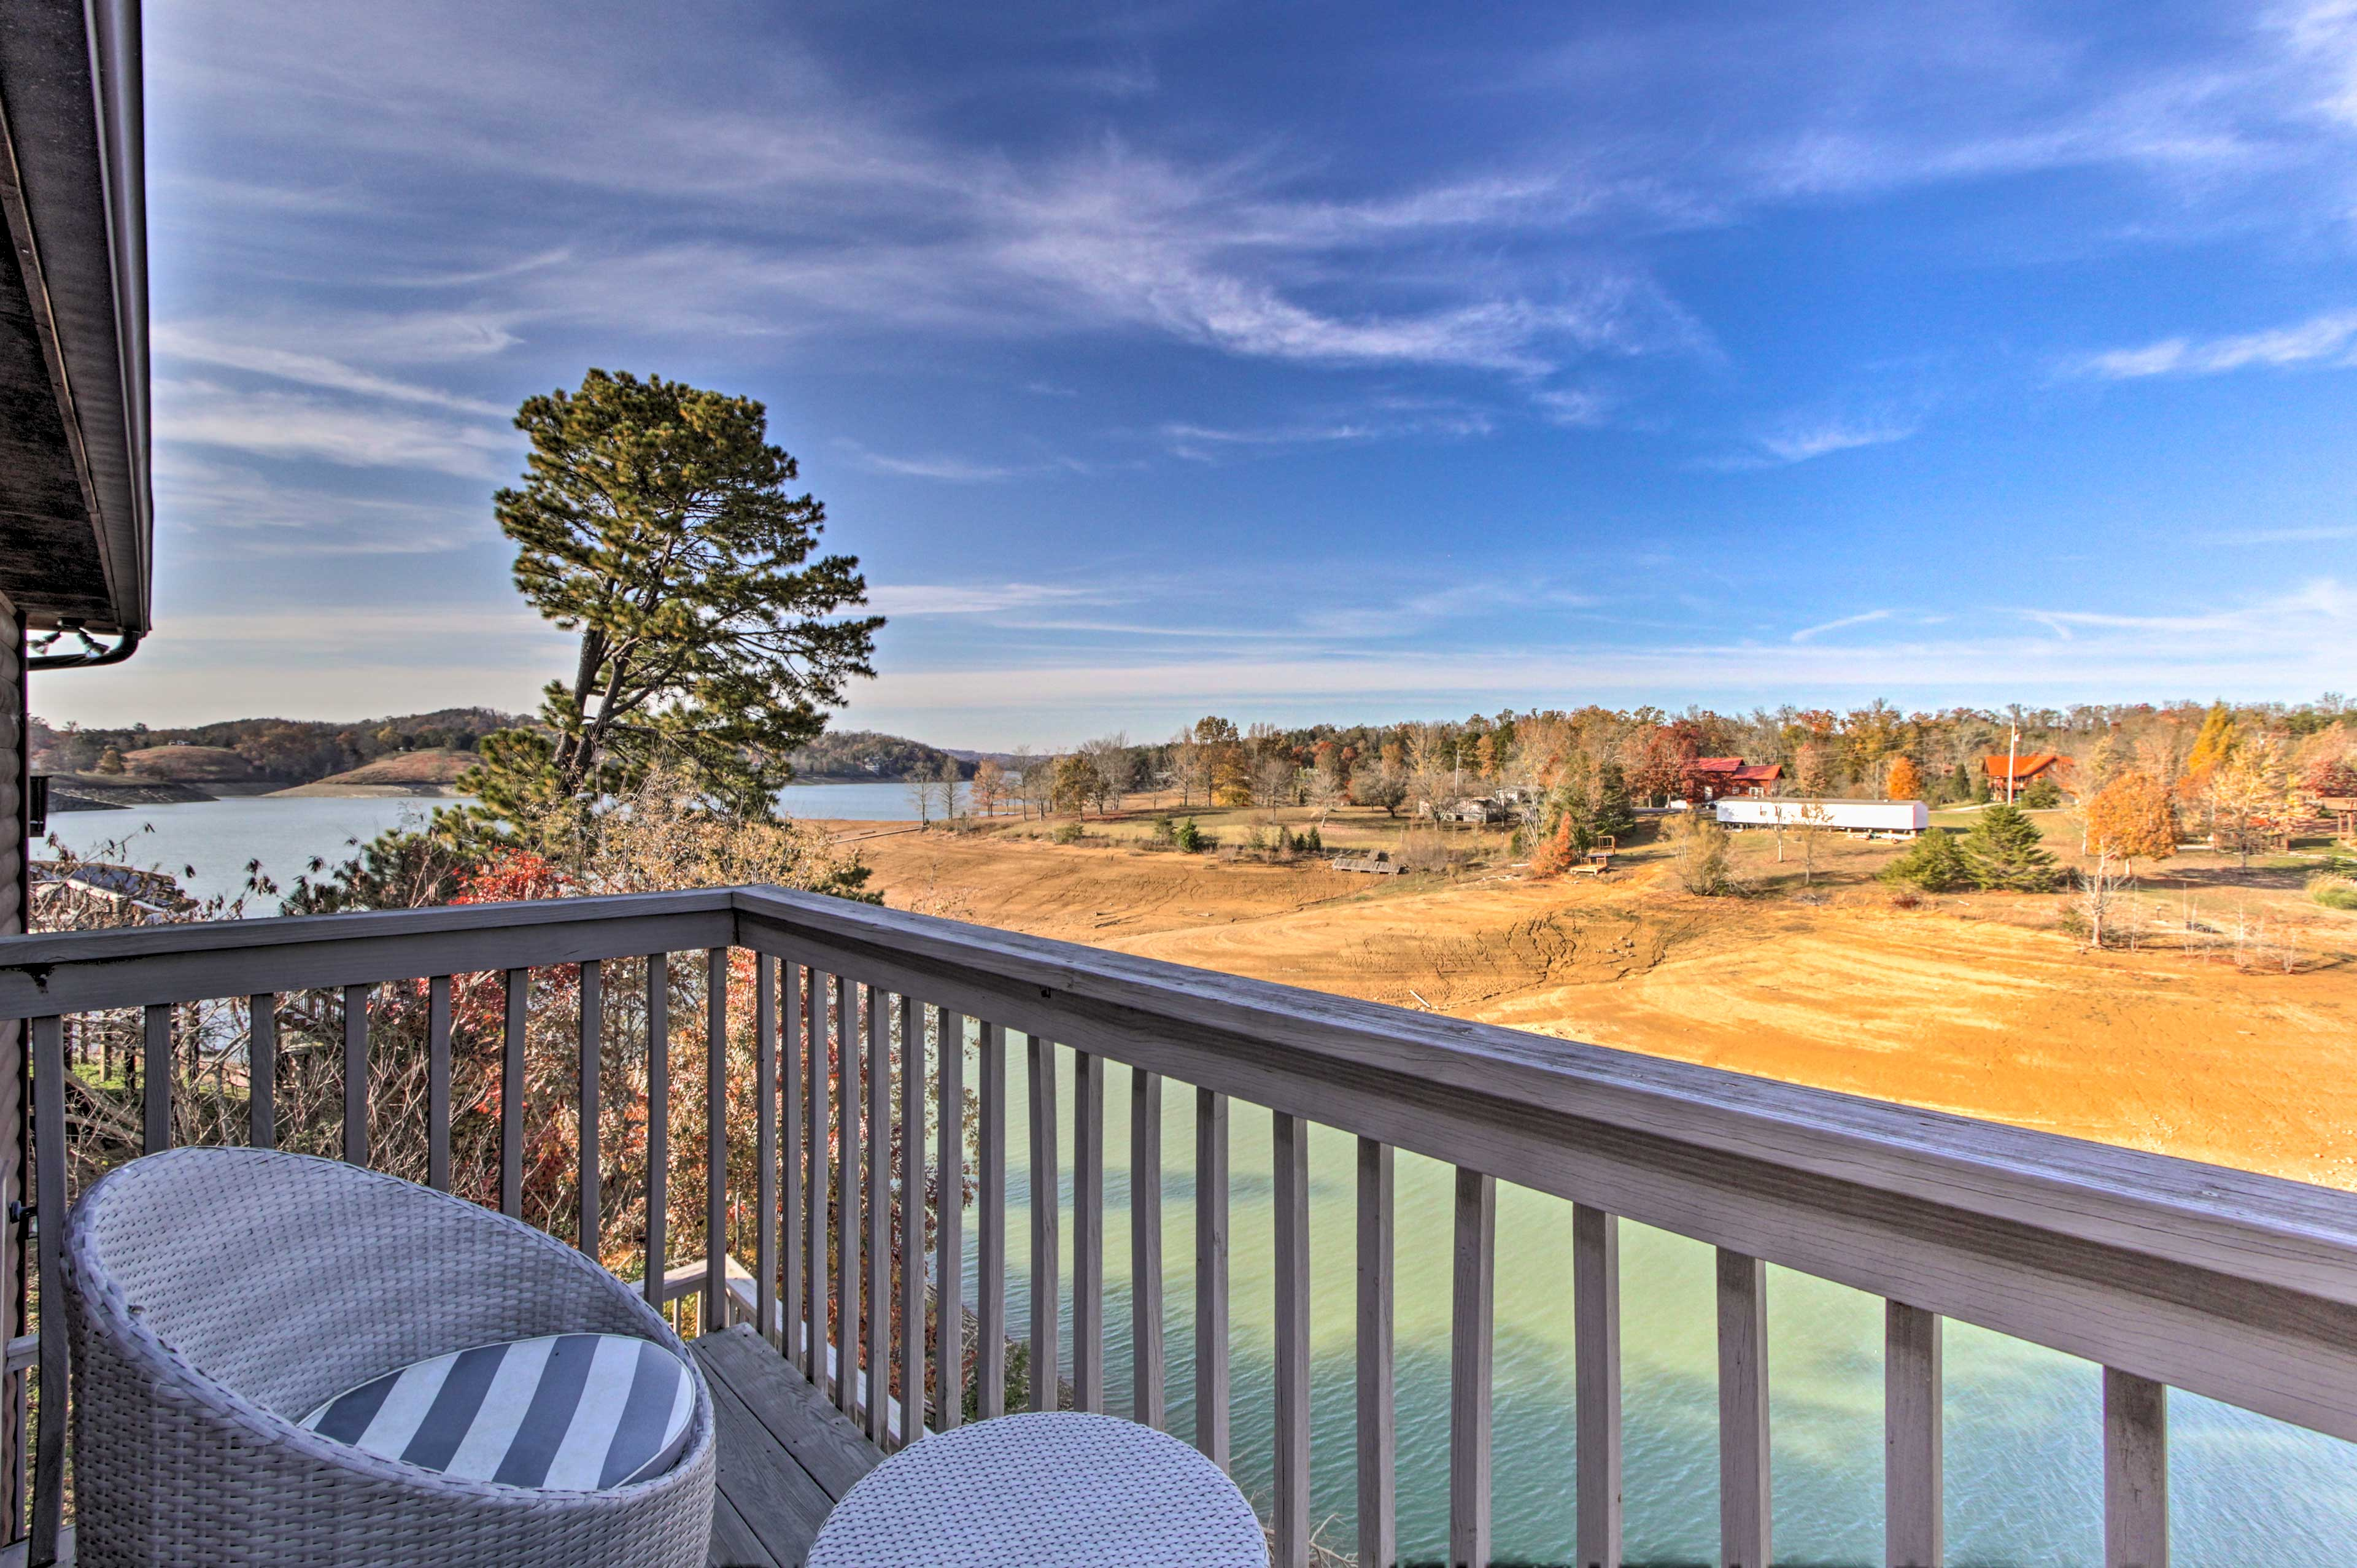 Soak in the stellar lake views from the top balcony.